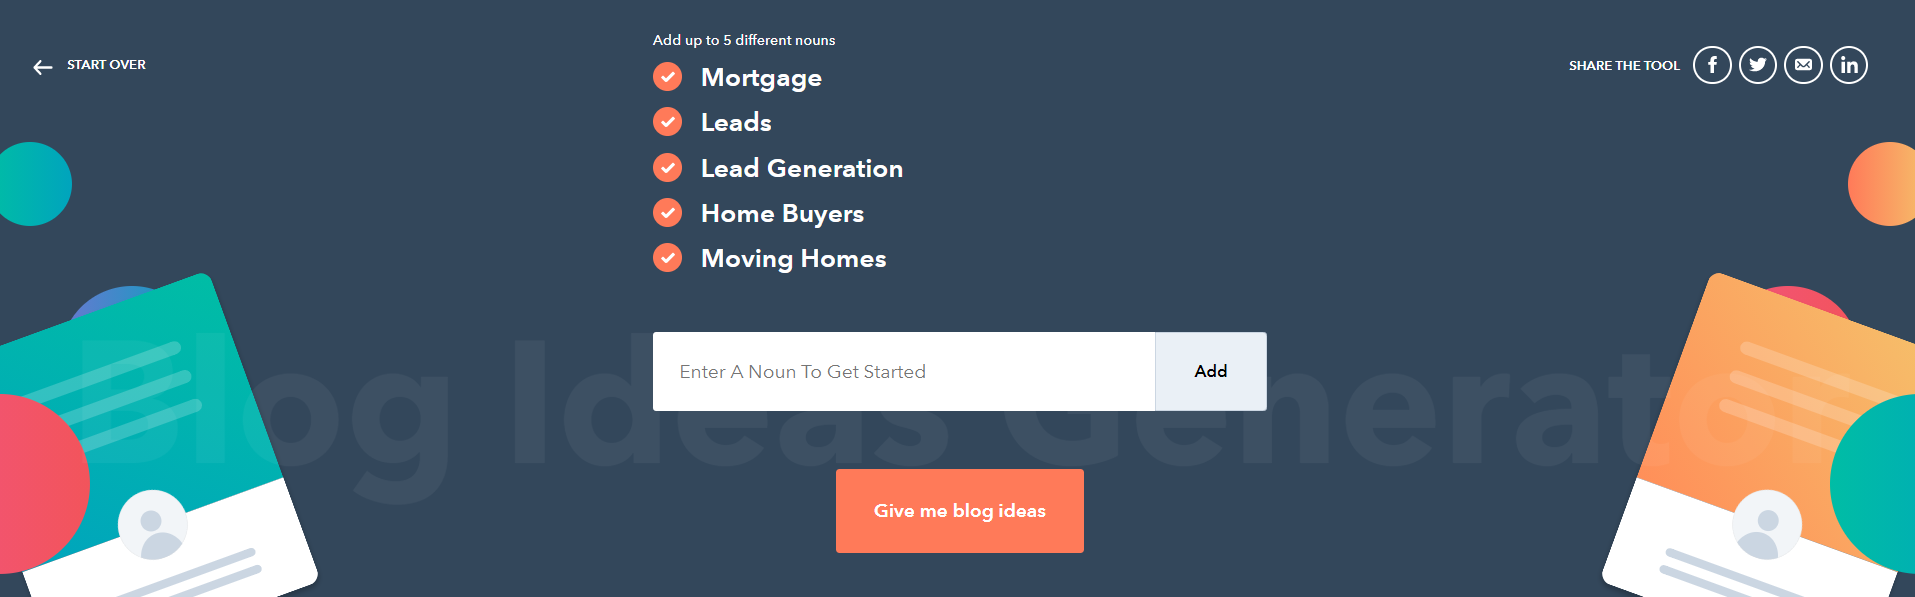 HubSpot content generator for mortgage lead generation